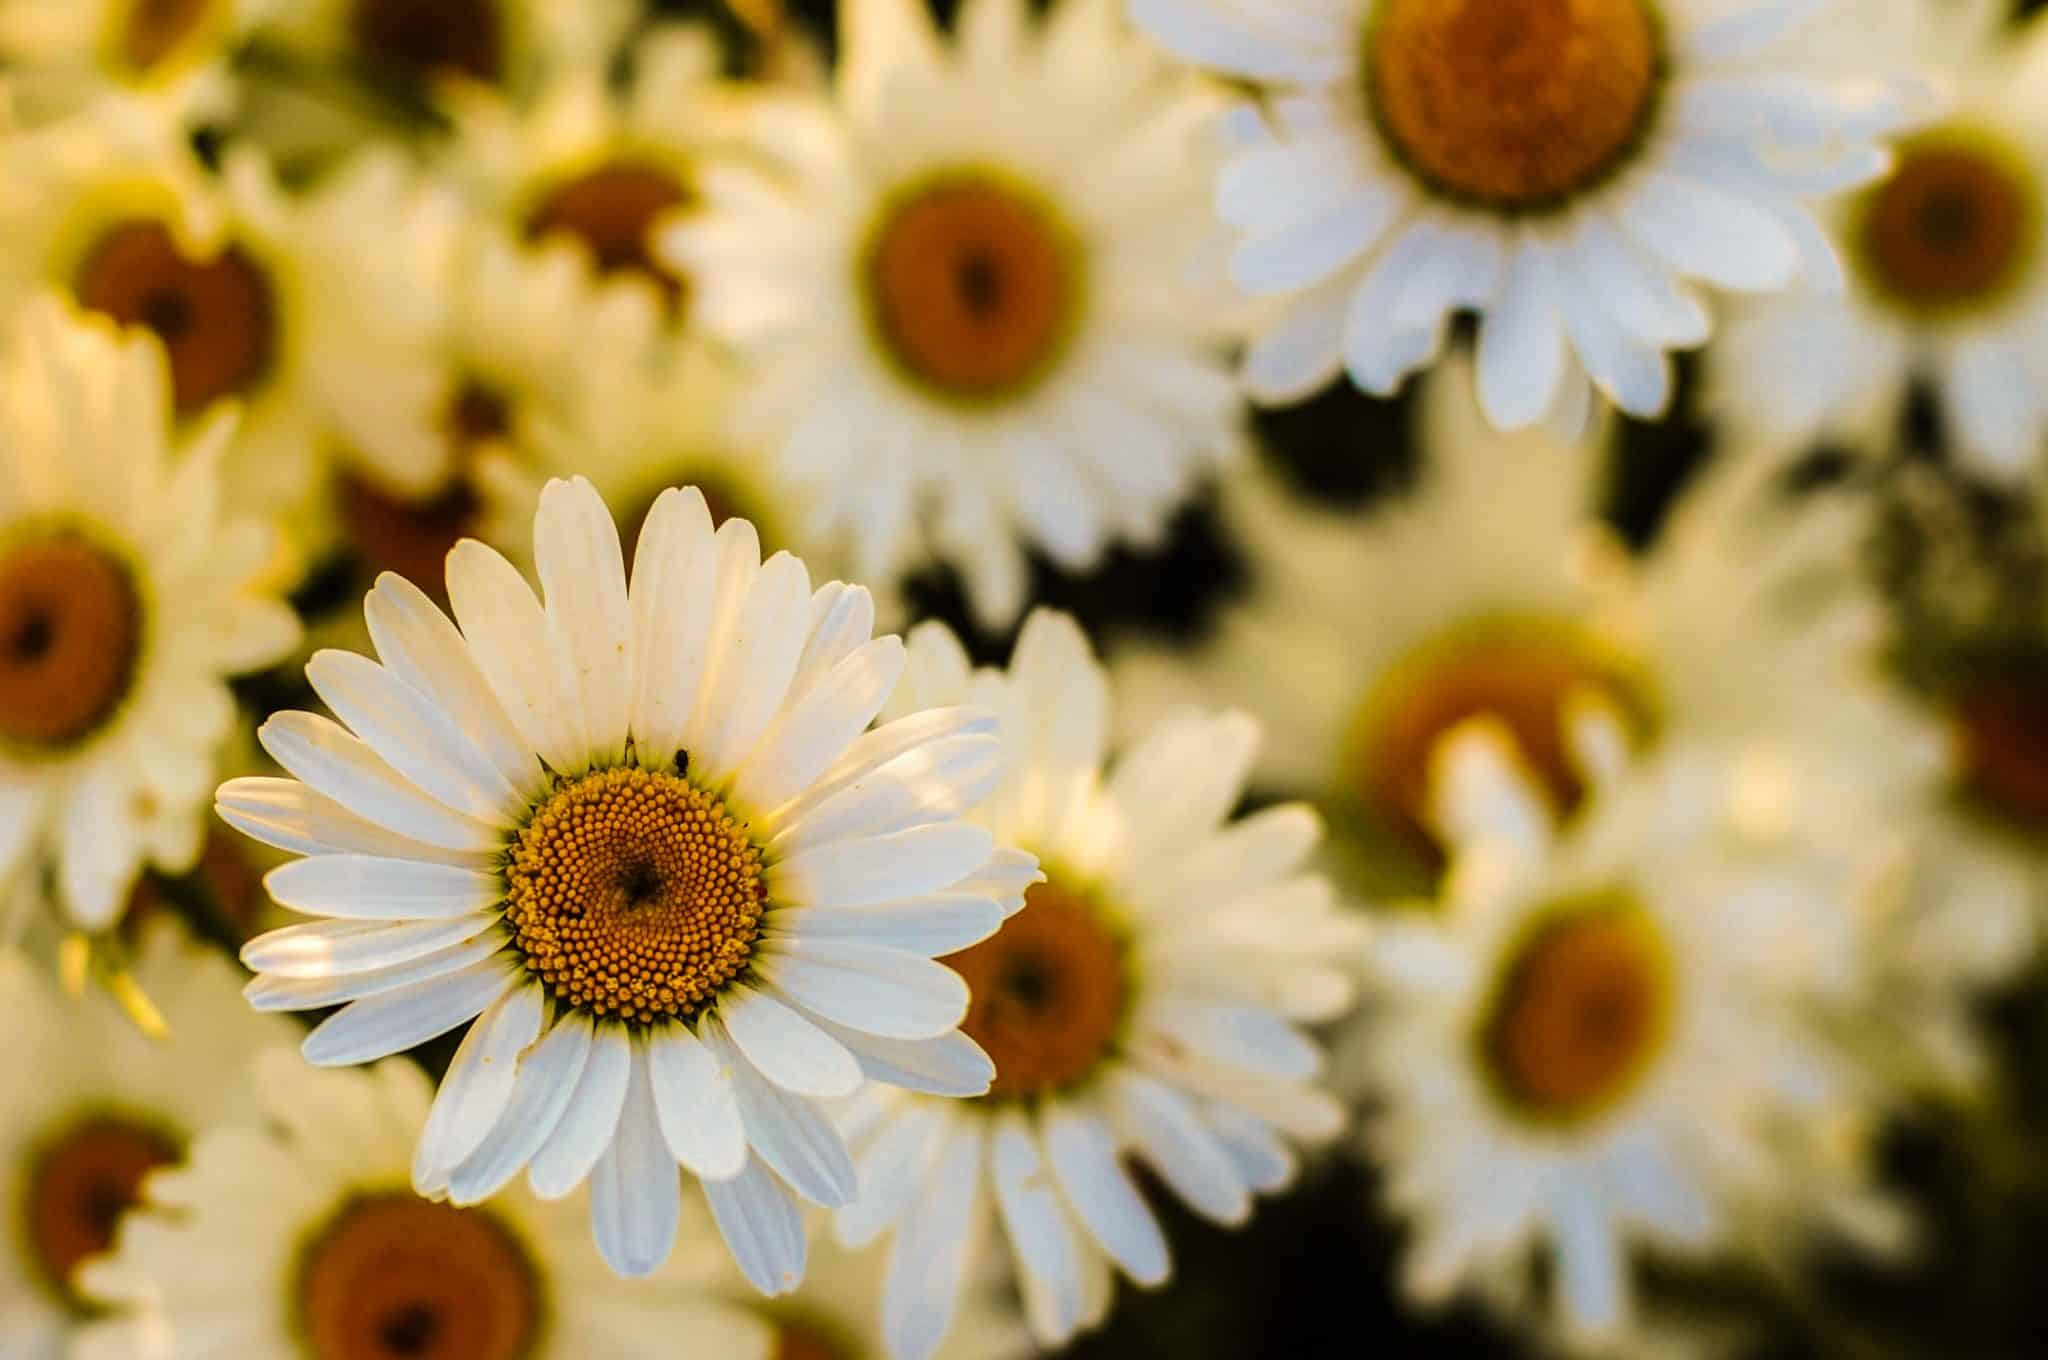 Daisies - background image for the header